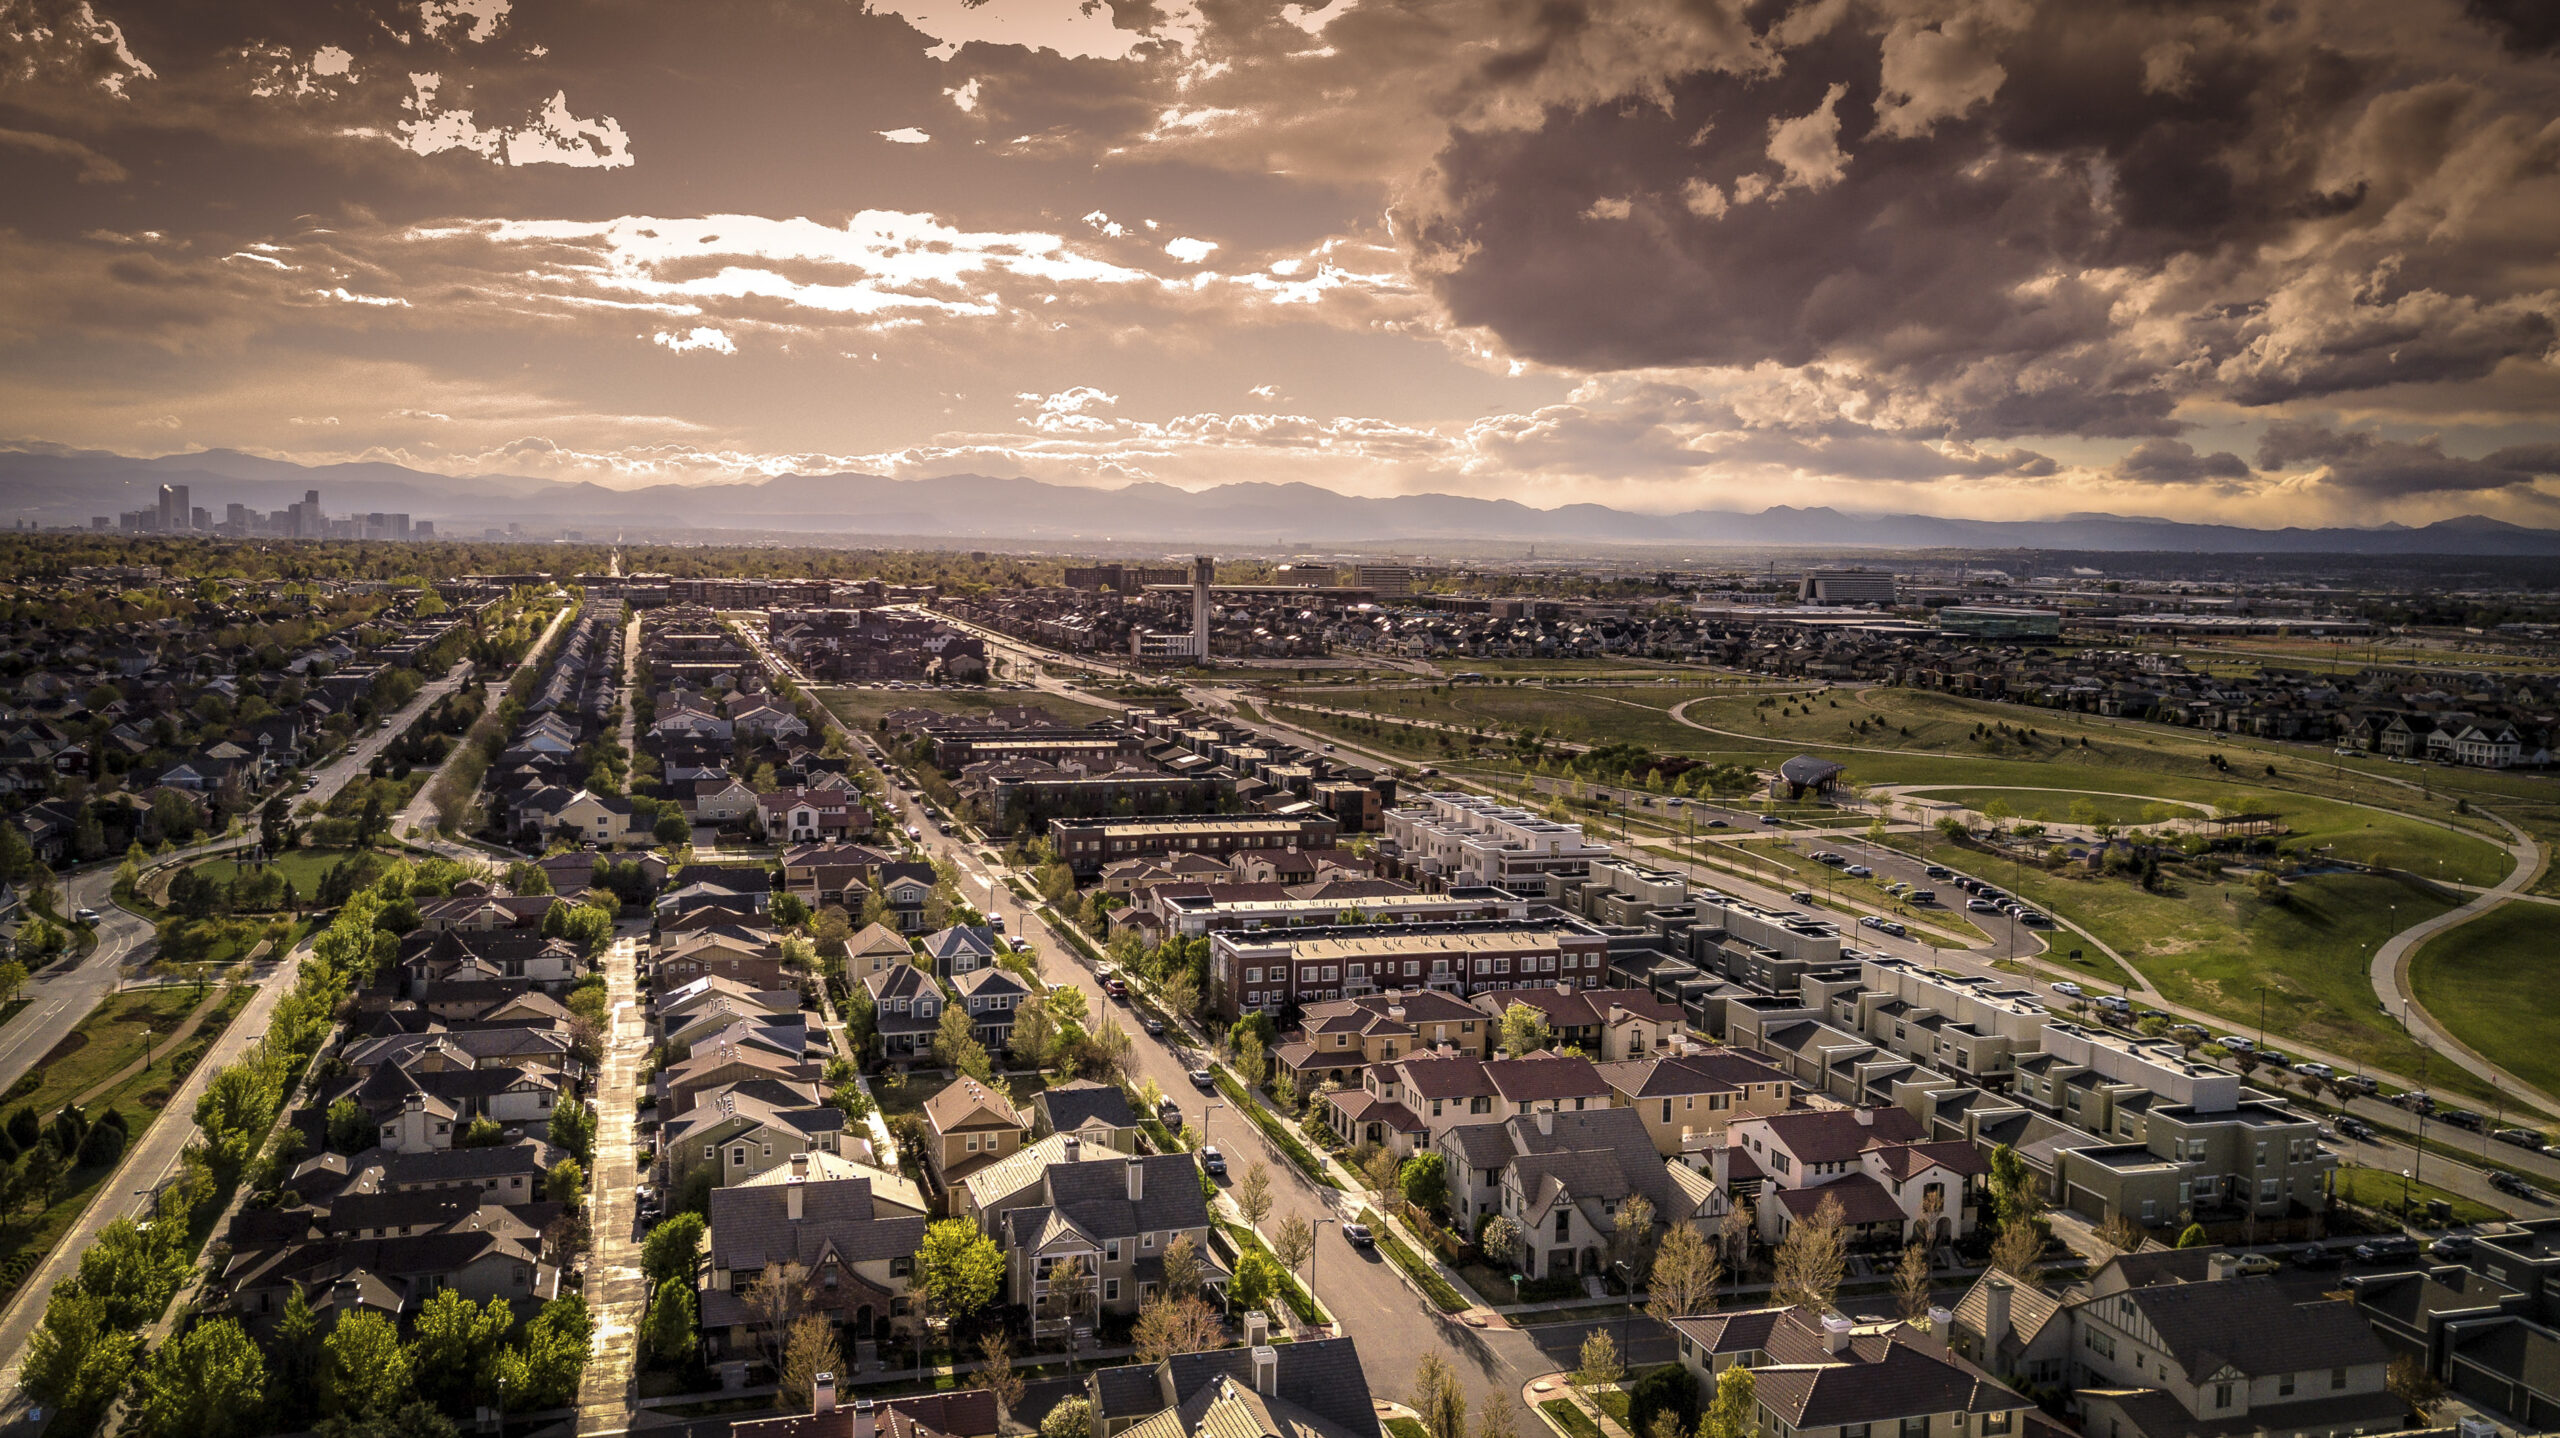 Opinion: How to End the War Over the Future of the Suburbs